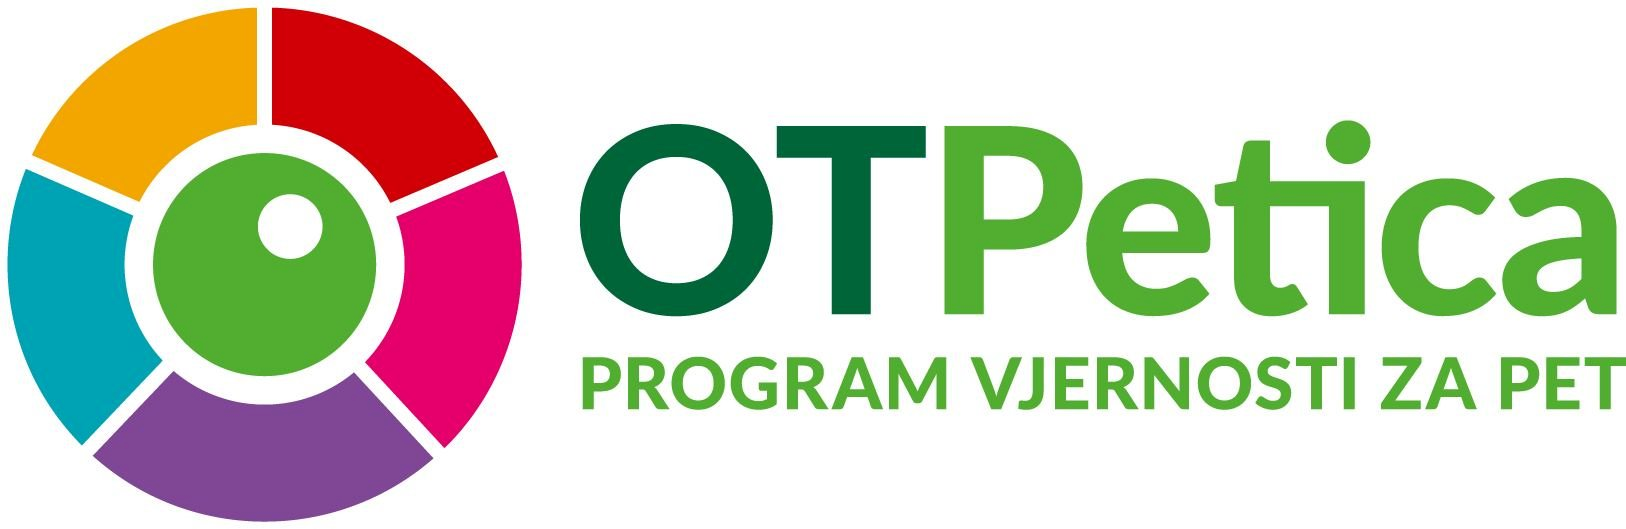 Program vjernosti OTPetica